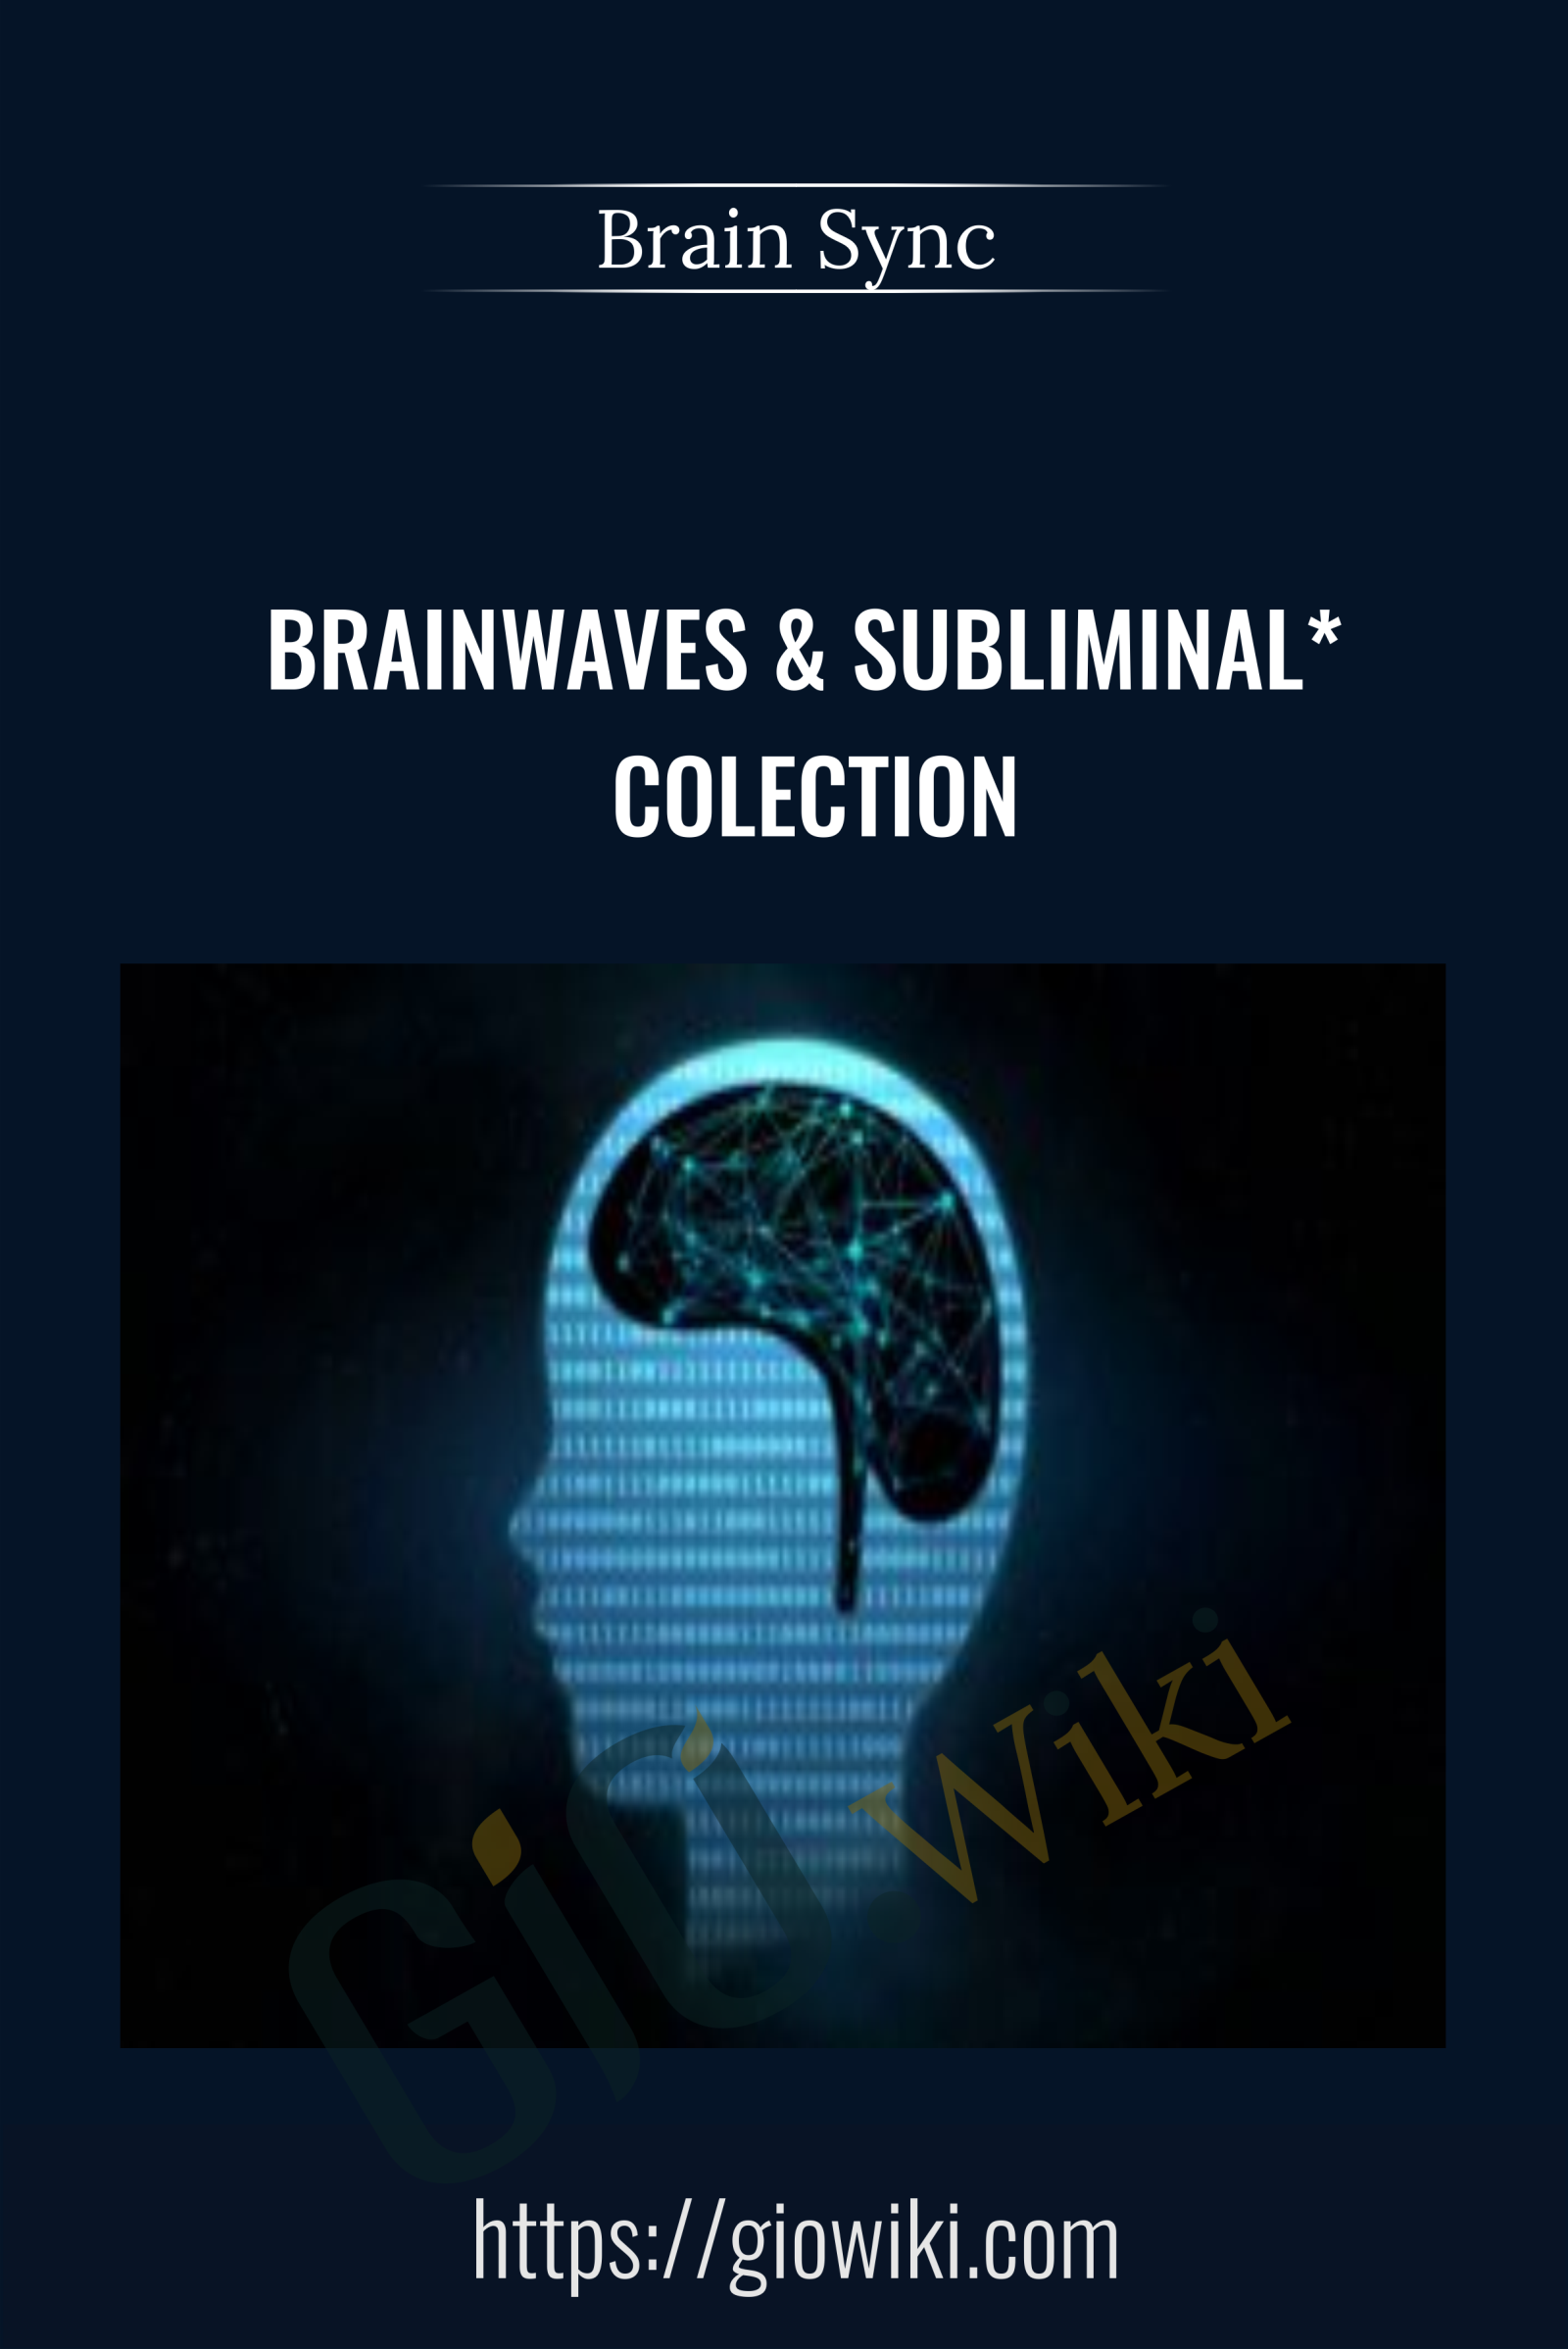 Brainwaves & Subliminal* Colection - Brain Sync